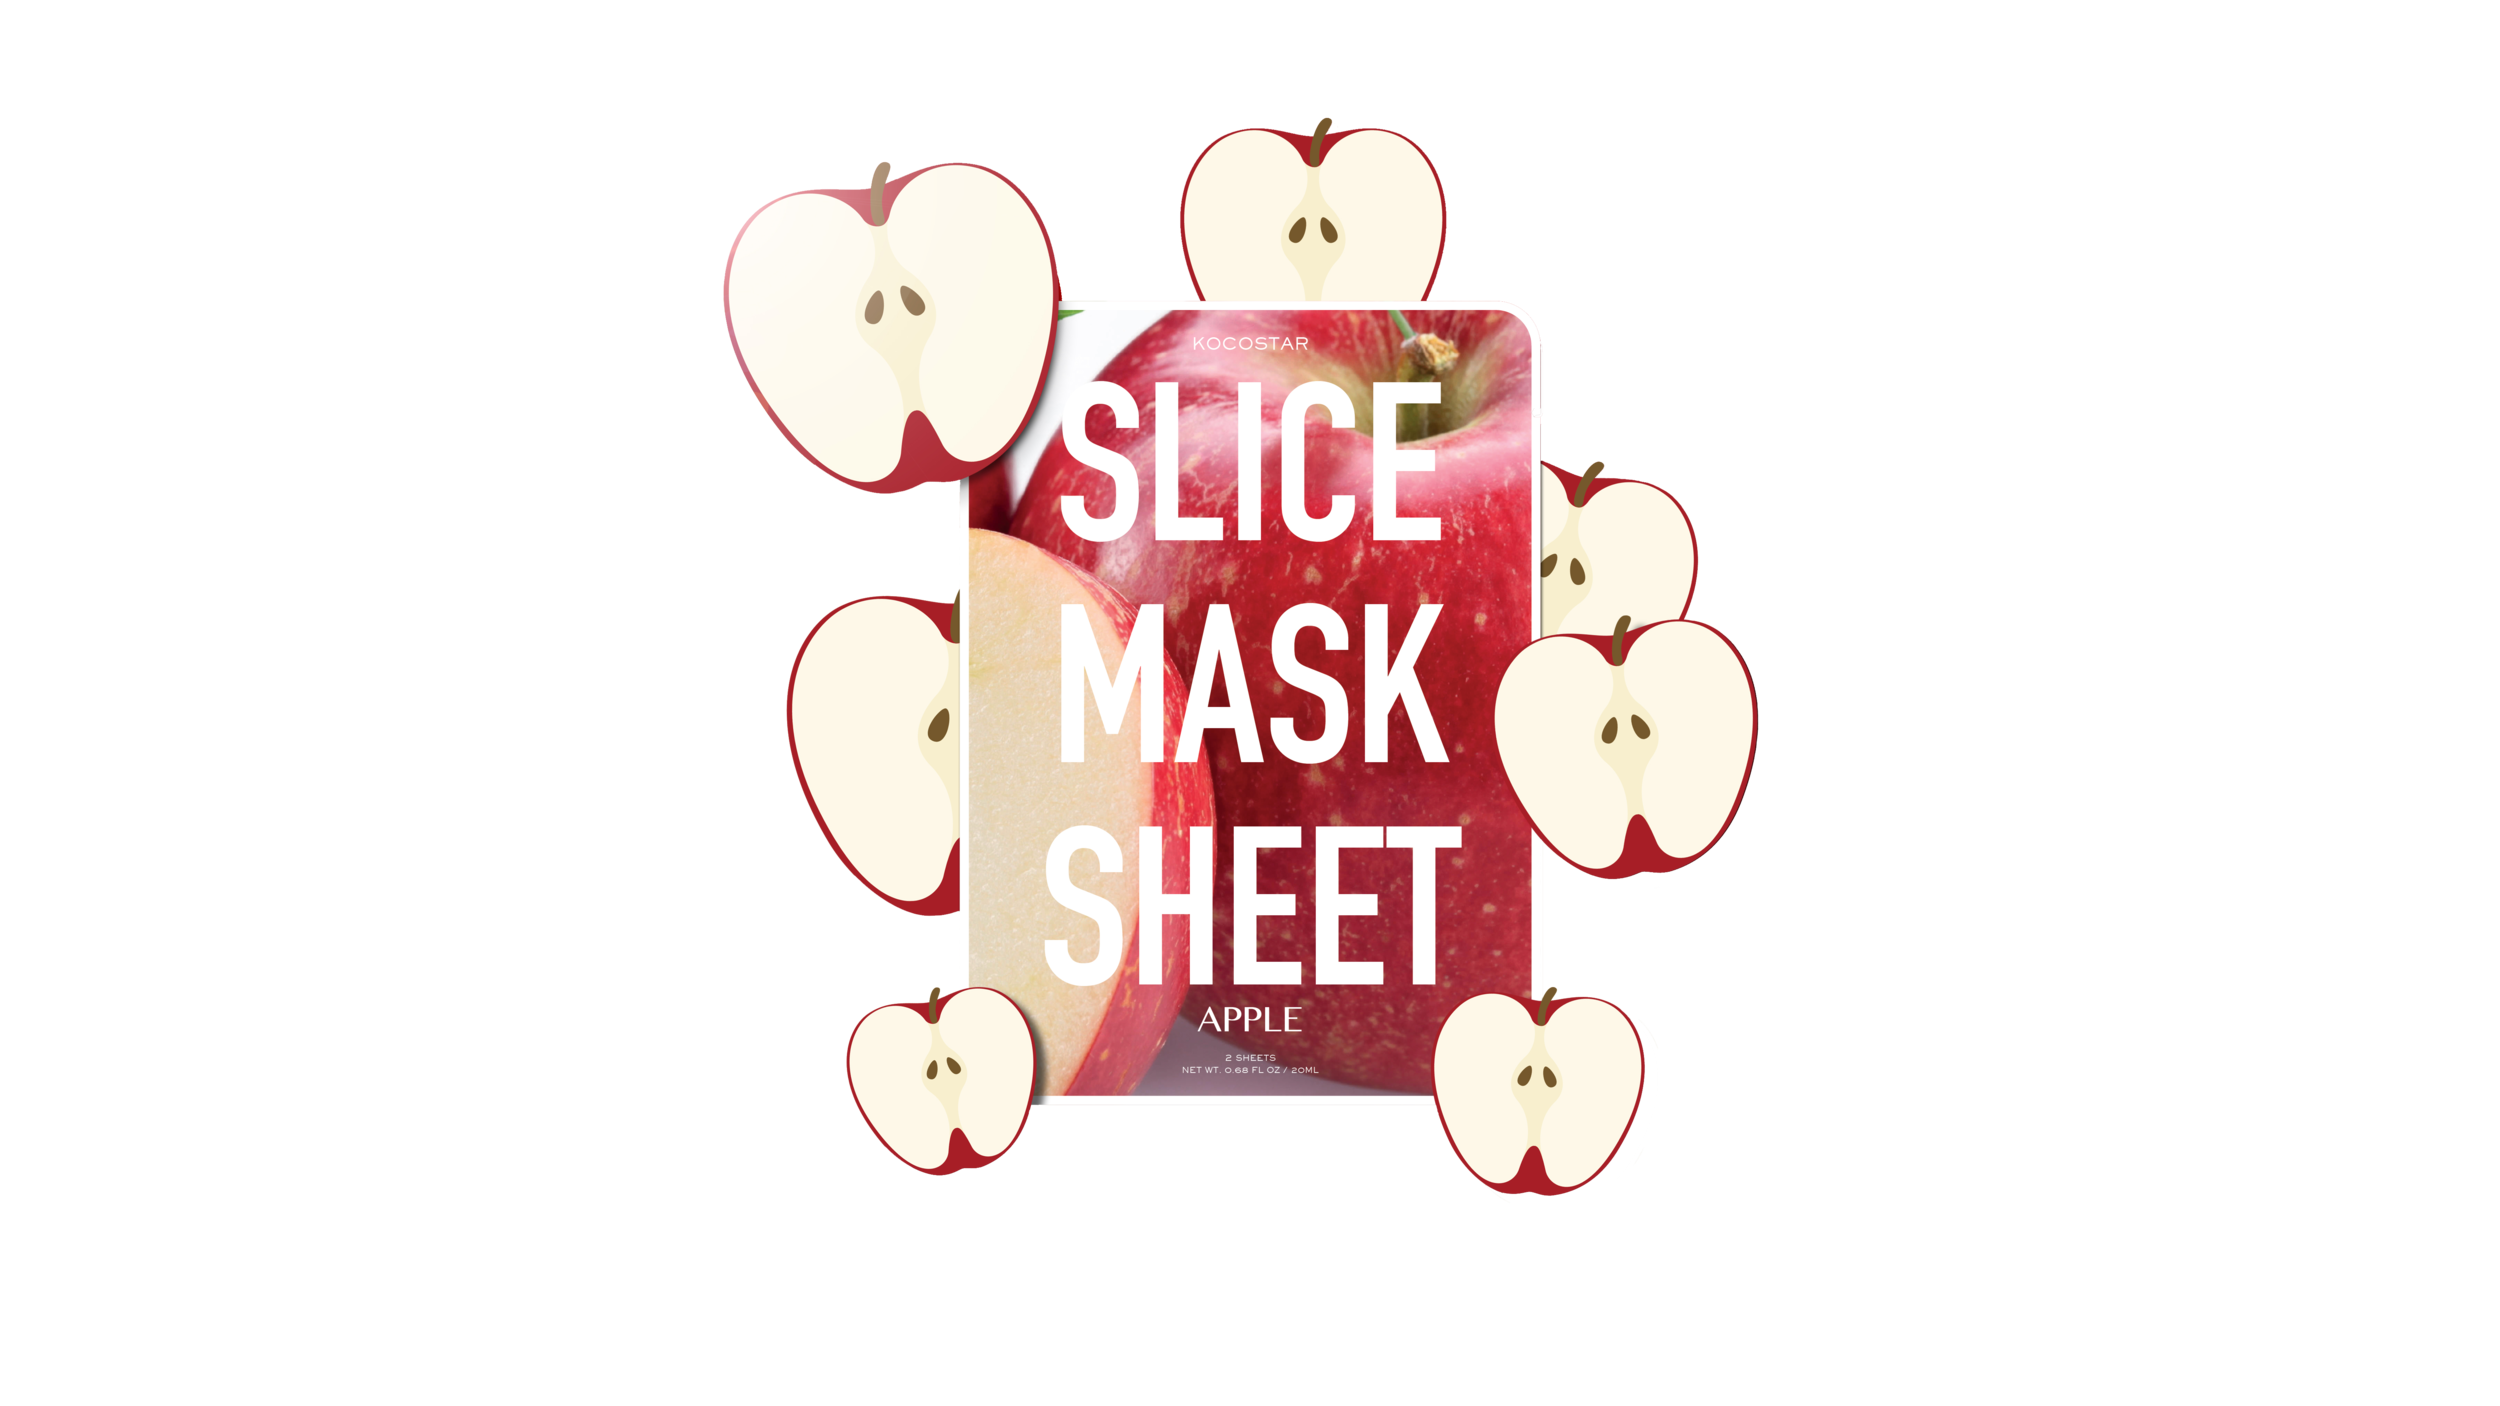 Slice mask sheet surrounded by apple slices